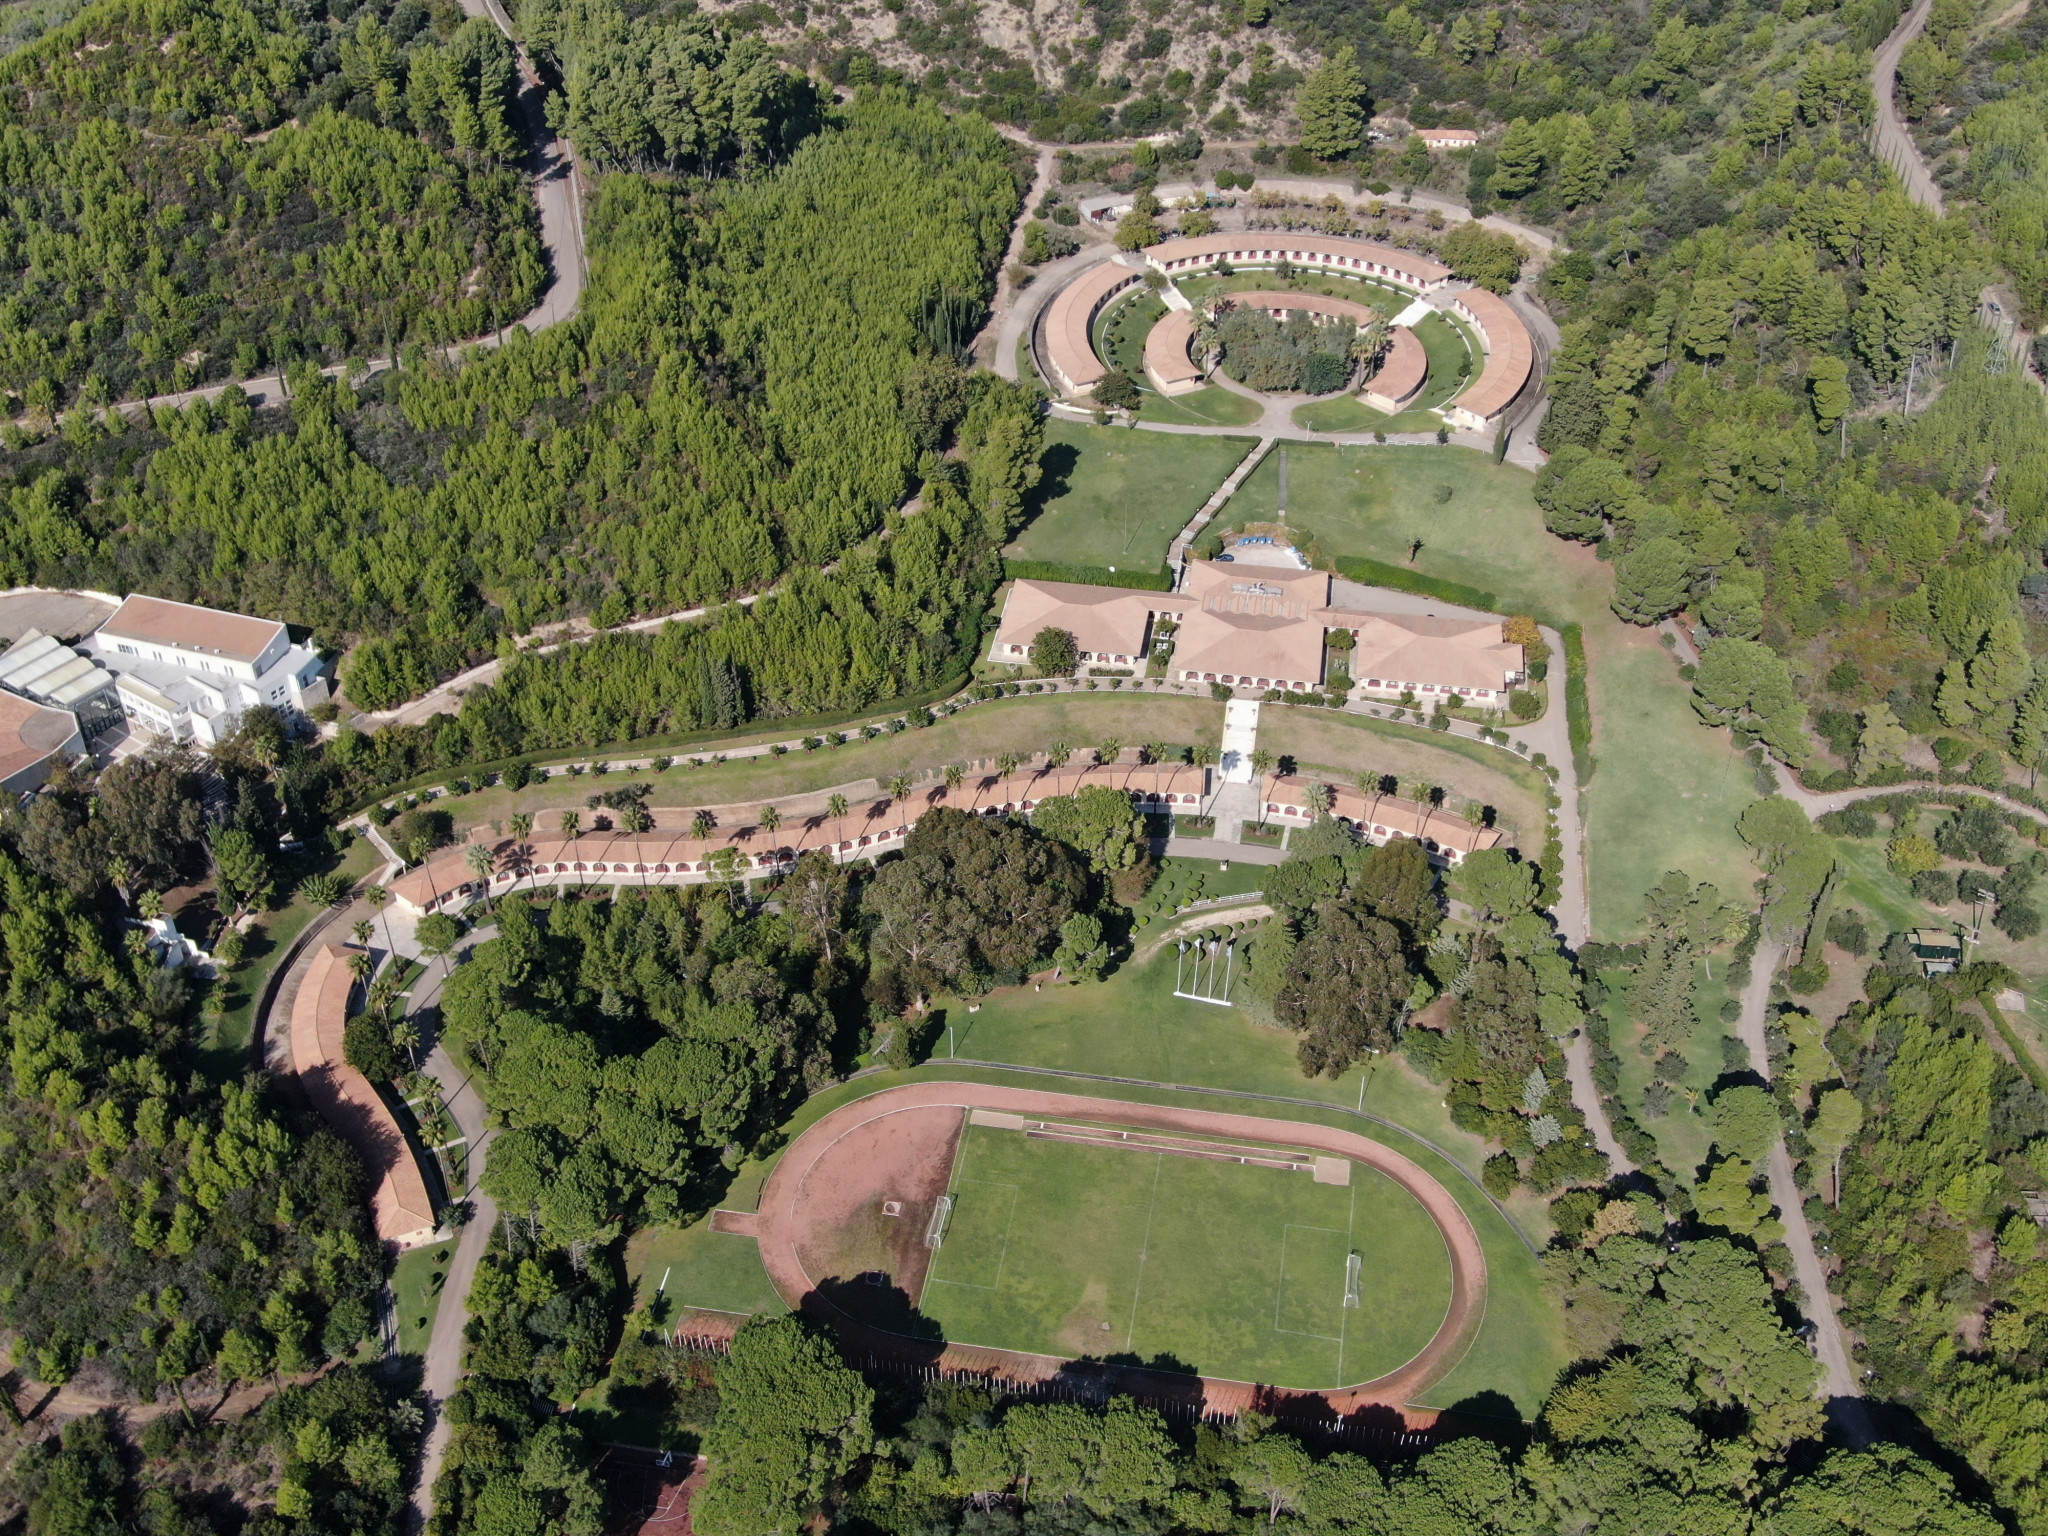 Work to upgrade the International Olympic Academy has started as scheduled ©IOA